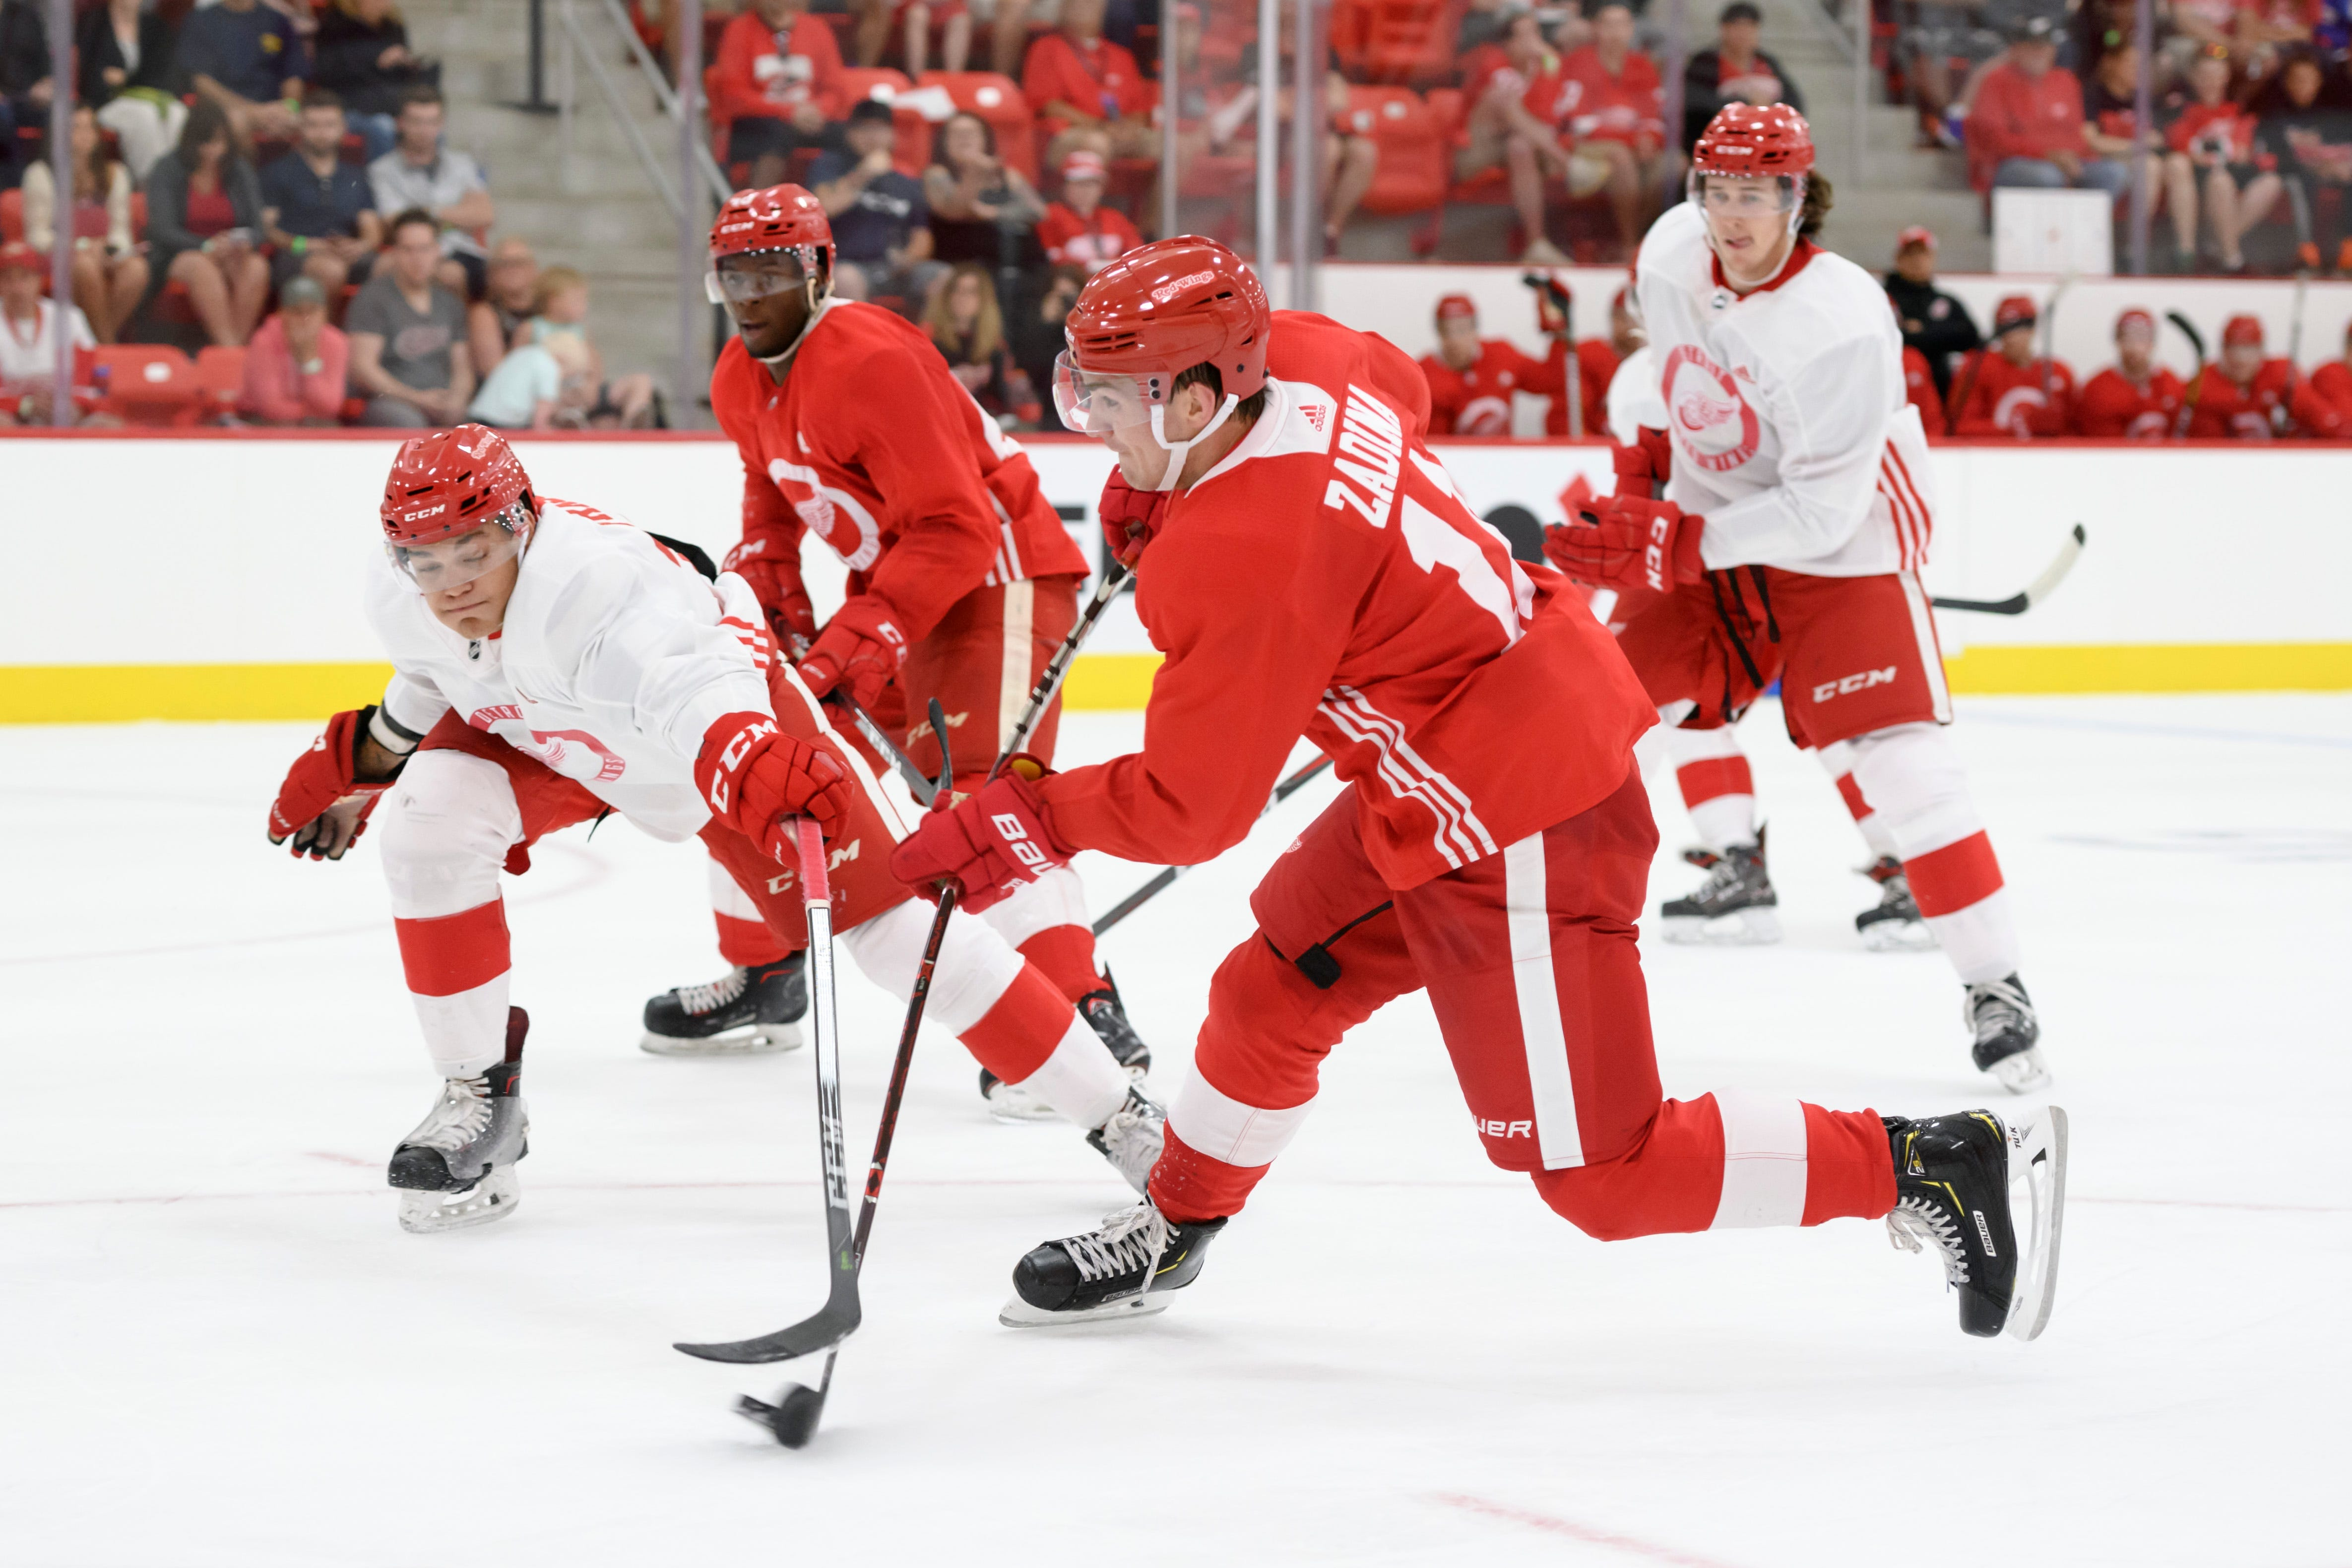 http://www detroitnews com/picture-gallery/sports/nhl/red-wings/2018